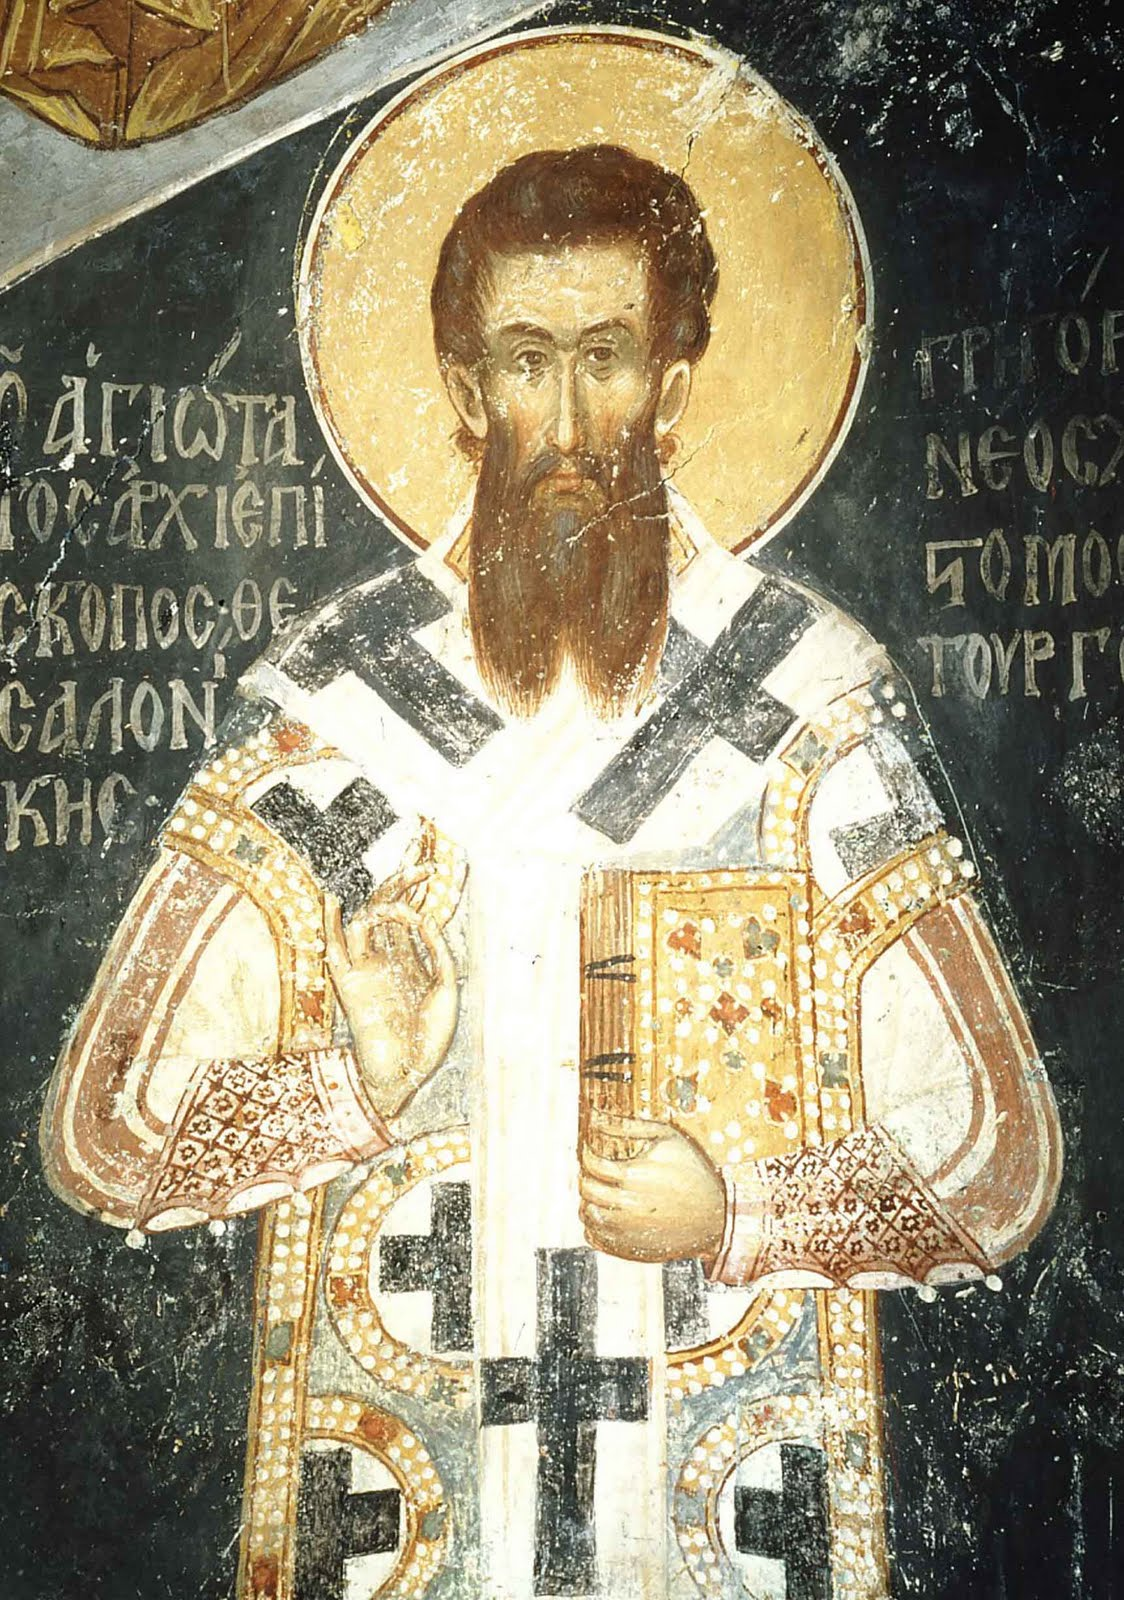 St. Gregory Palamas ca. 1296-1359 — Classical Christianity